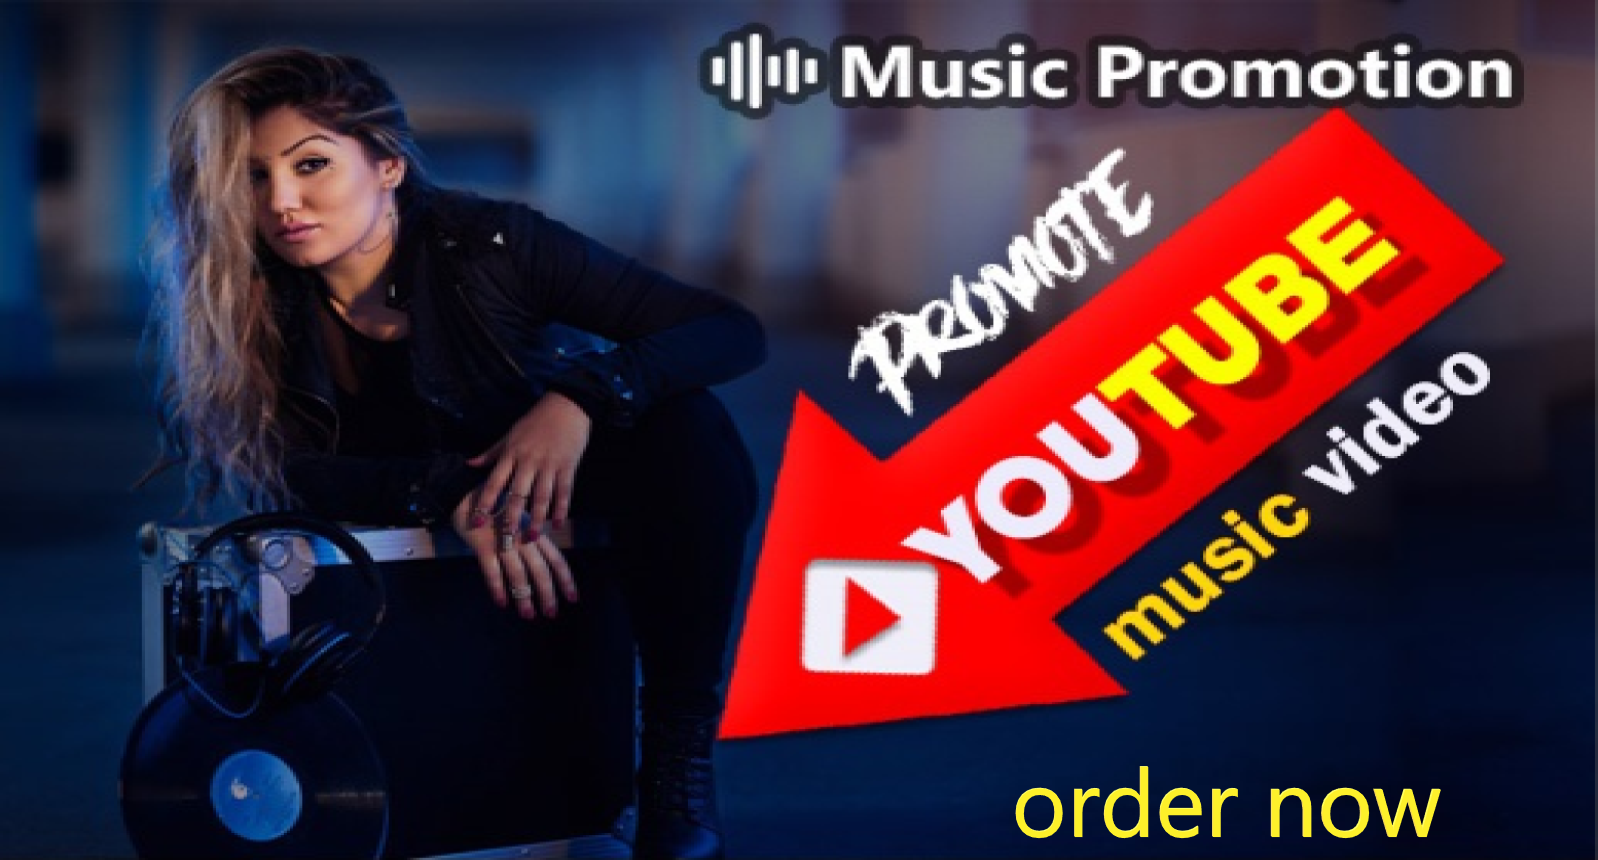 YouTube music and video promotion via social media marketing